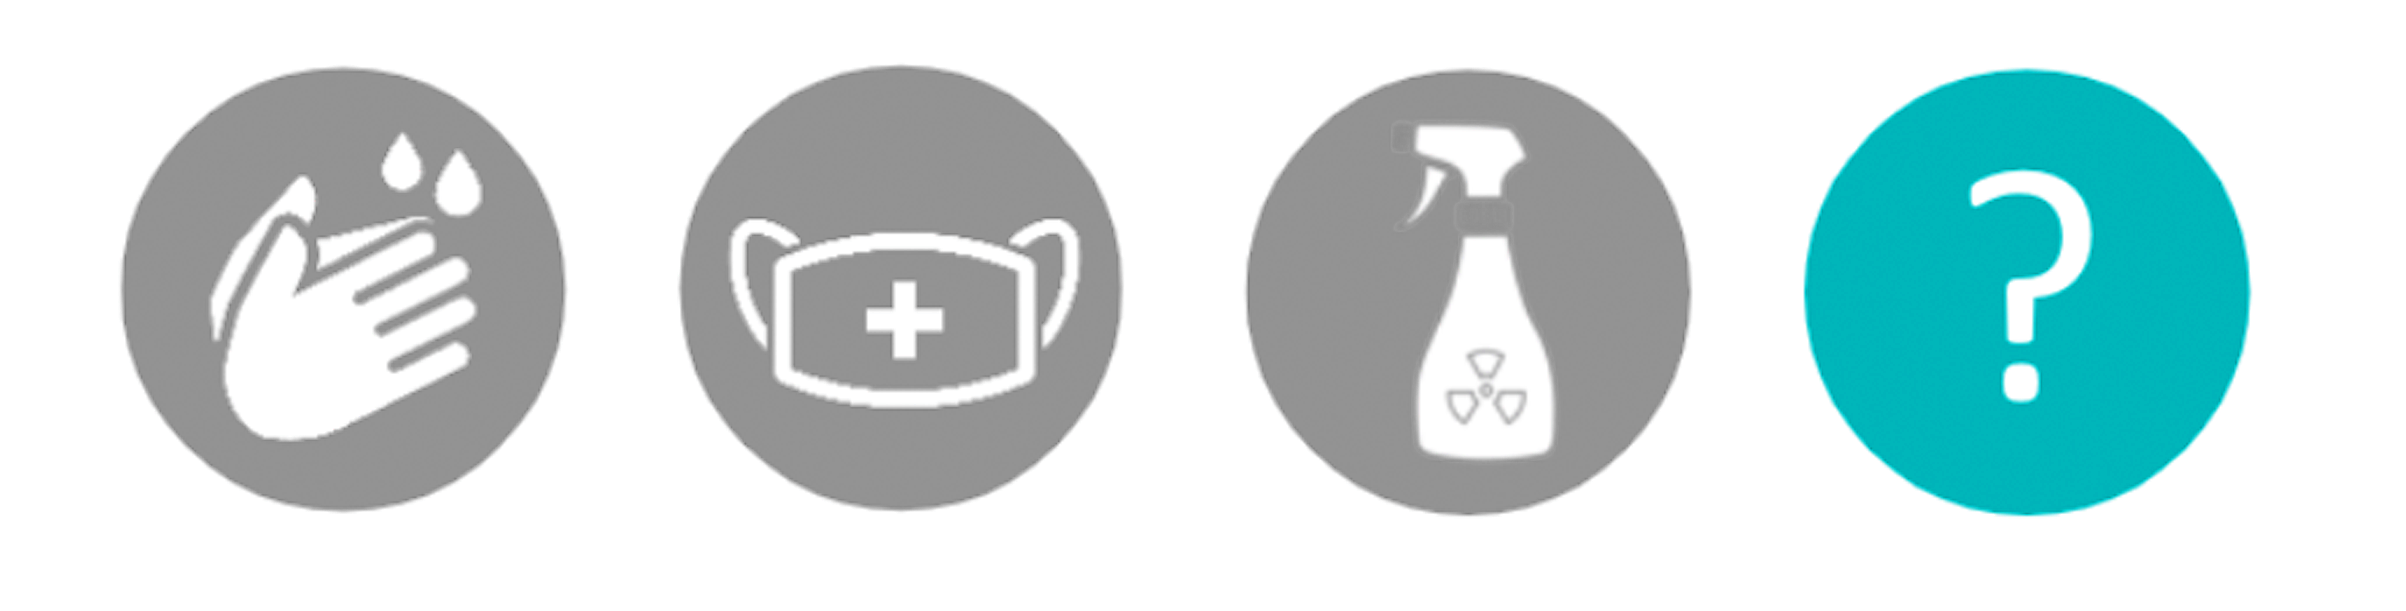 Icons relating to the products air cleaning capabilities